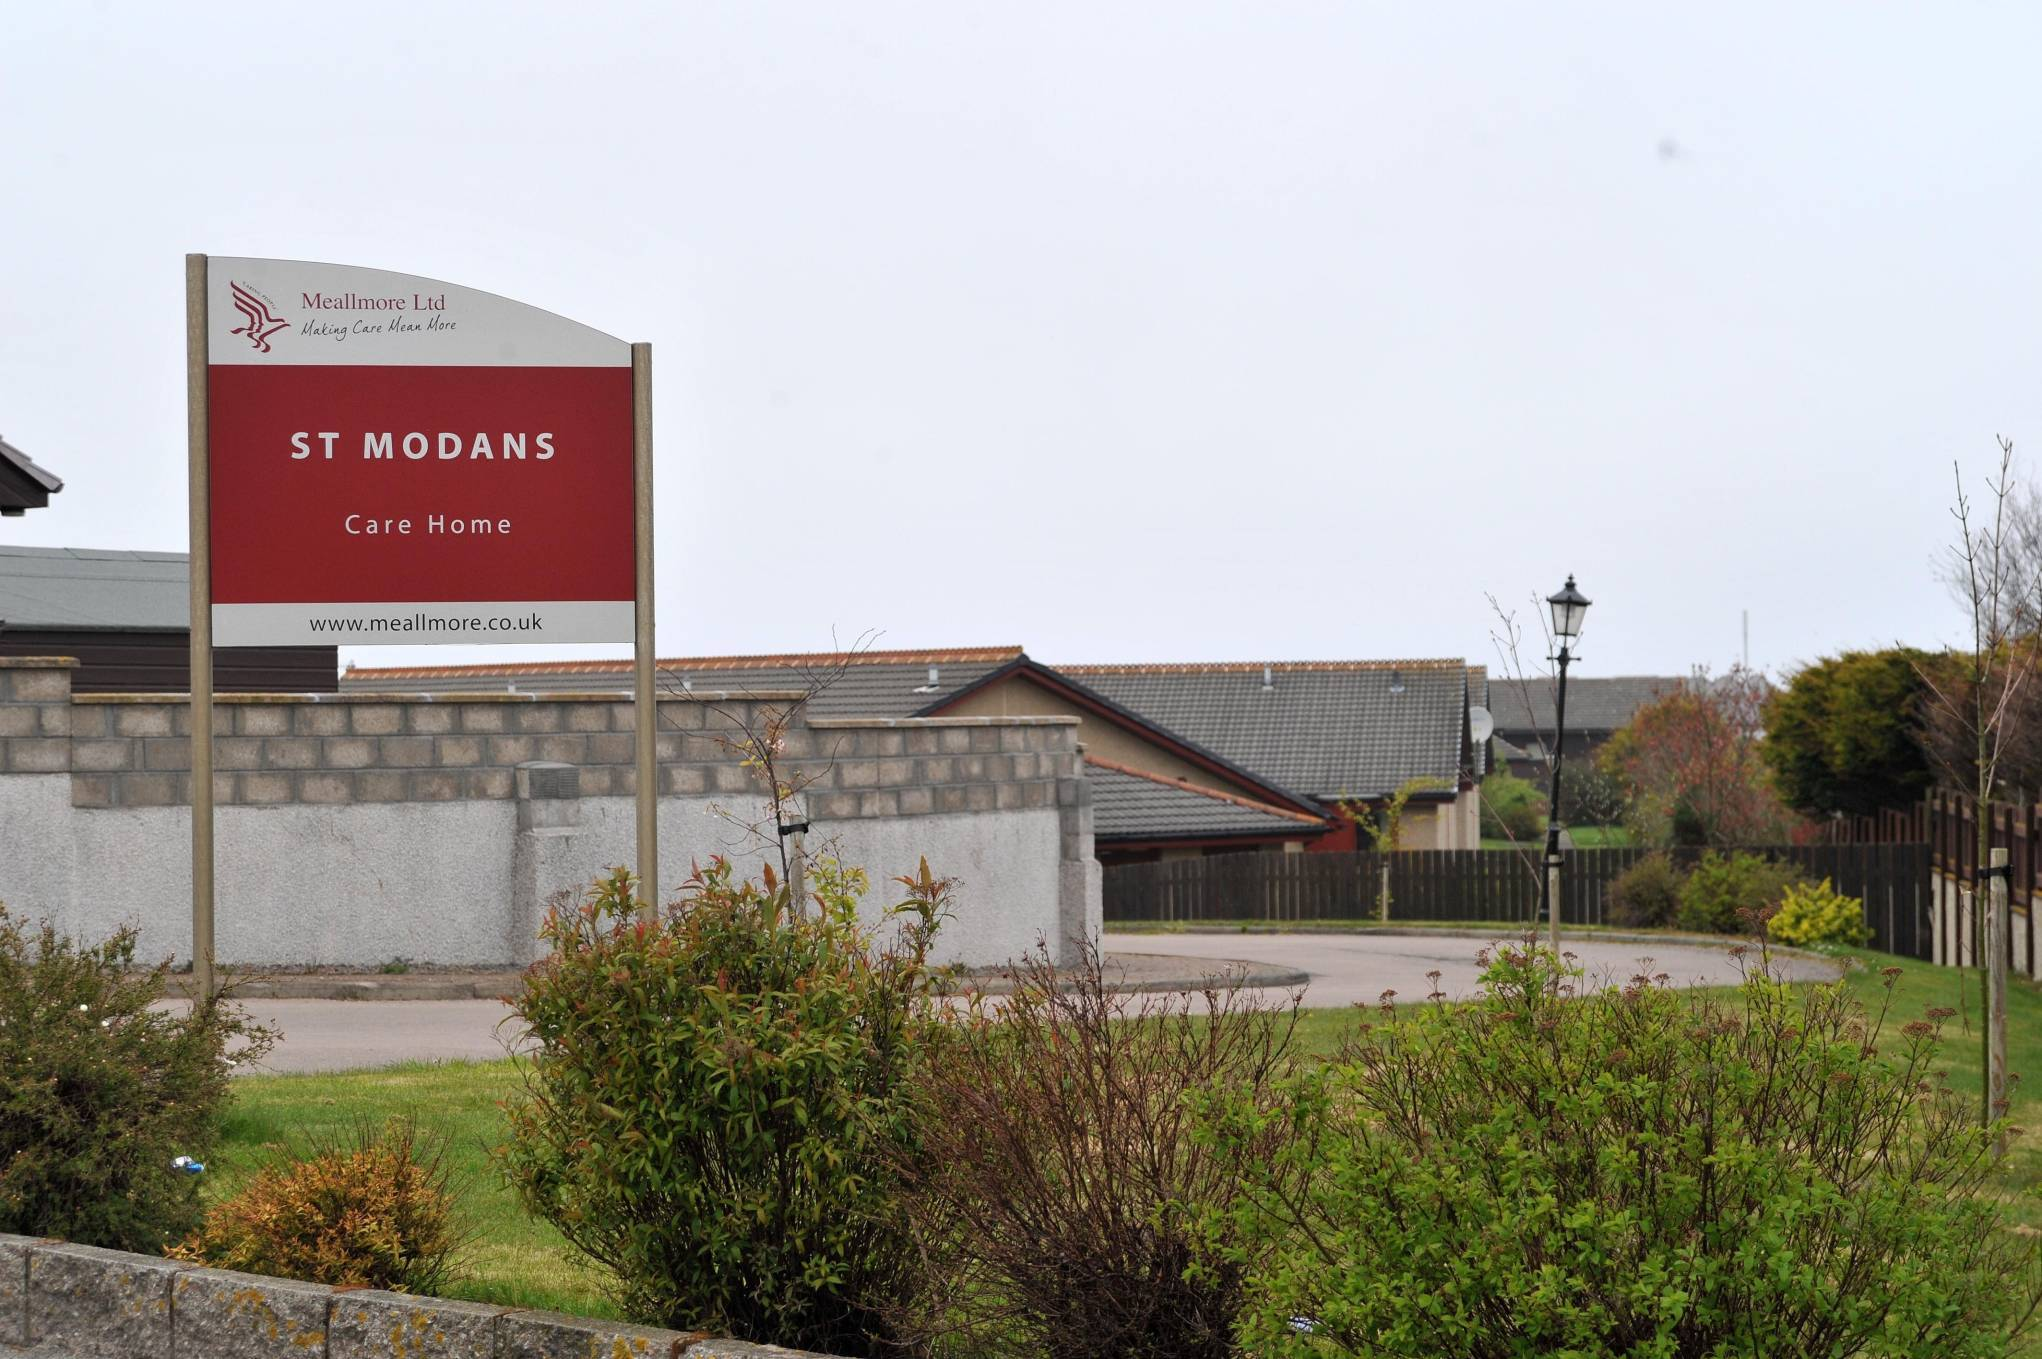 St Modans Care Home